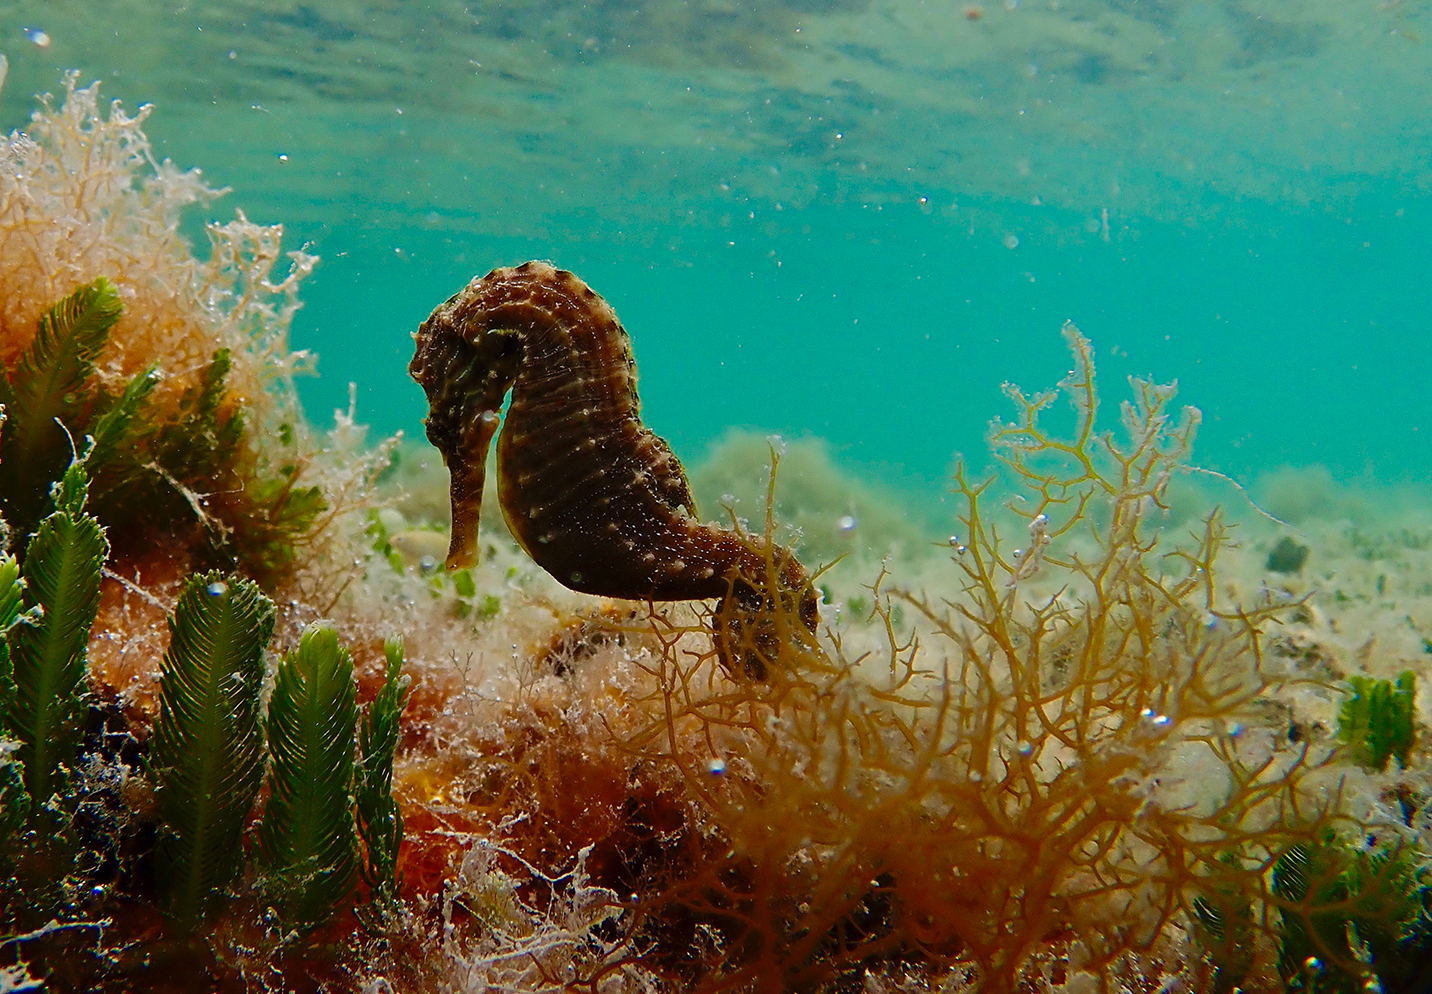 OPINION: Sea horse appears once again in North Bimini Bay